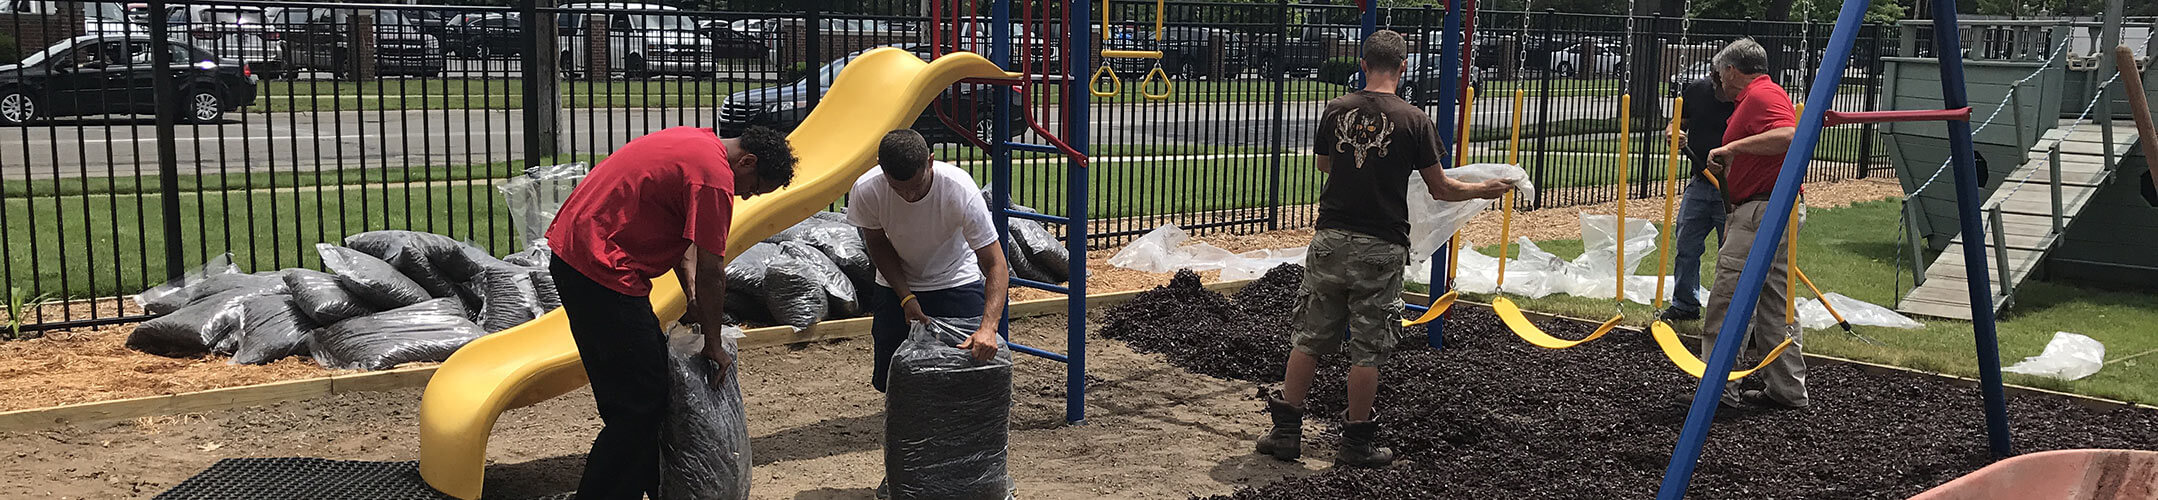 Volunteers Upkeeping Playground